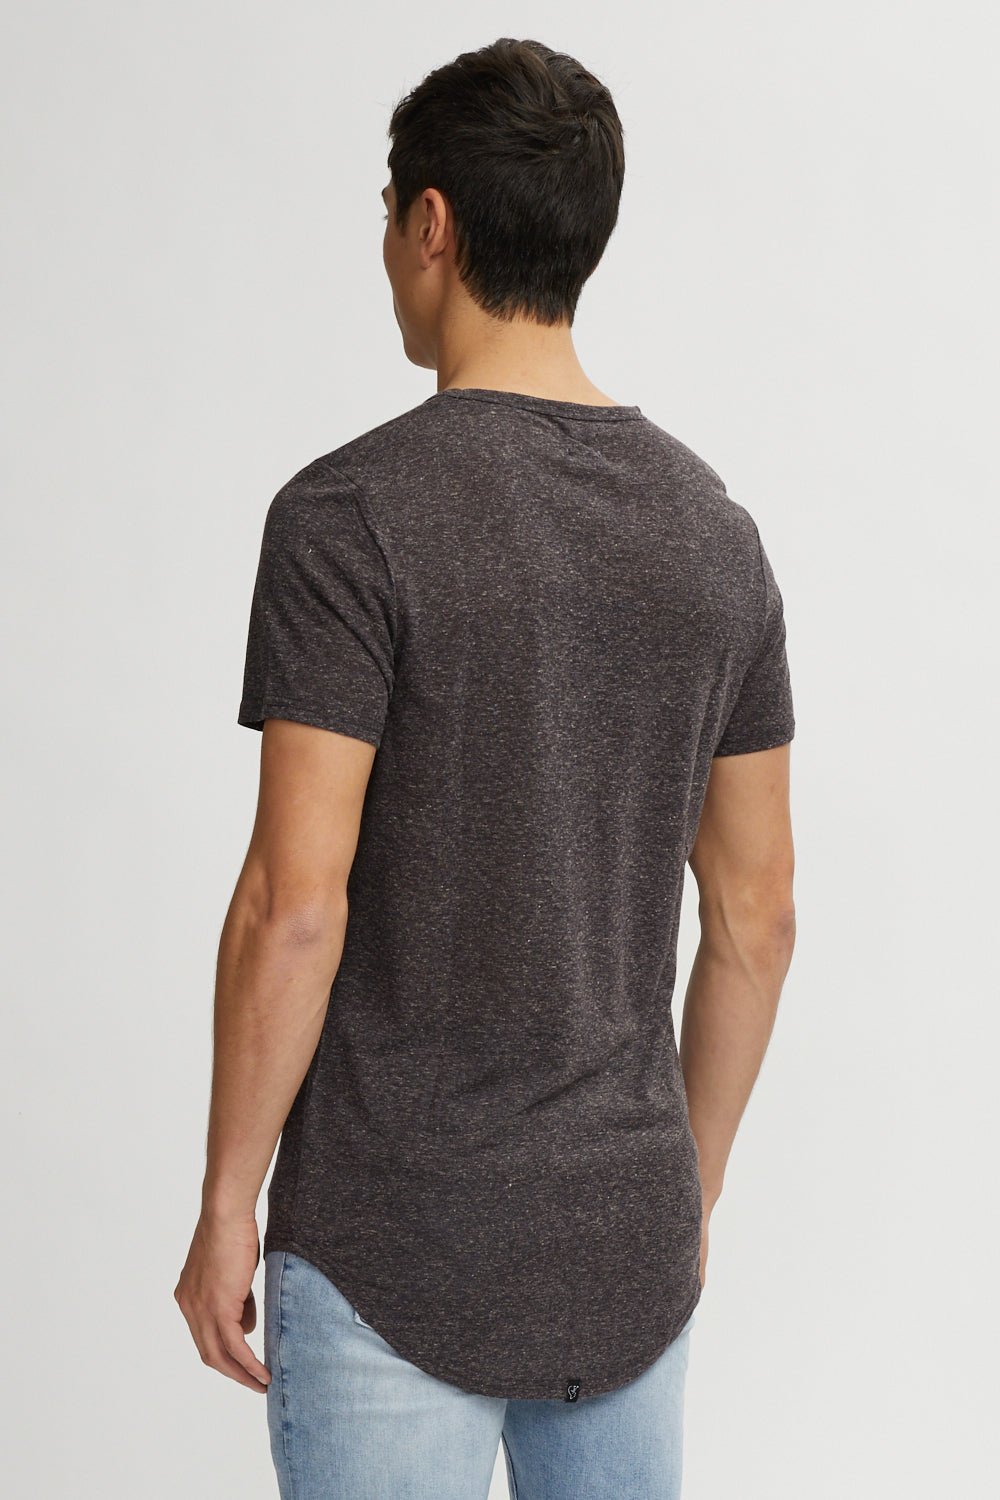 Linen Hi-Lo Tee Mix Black